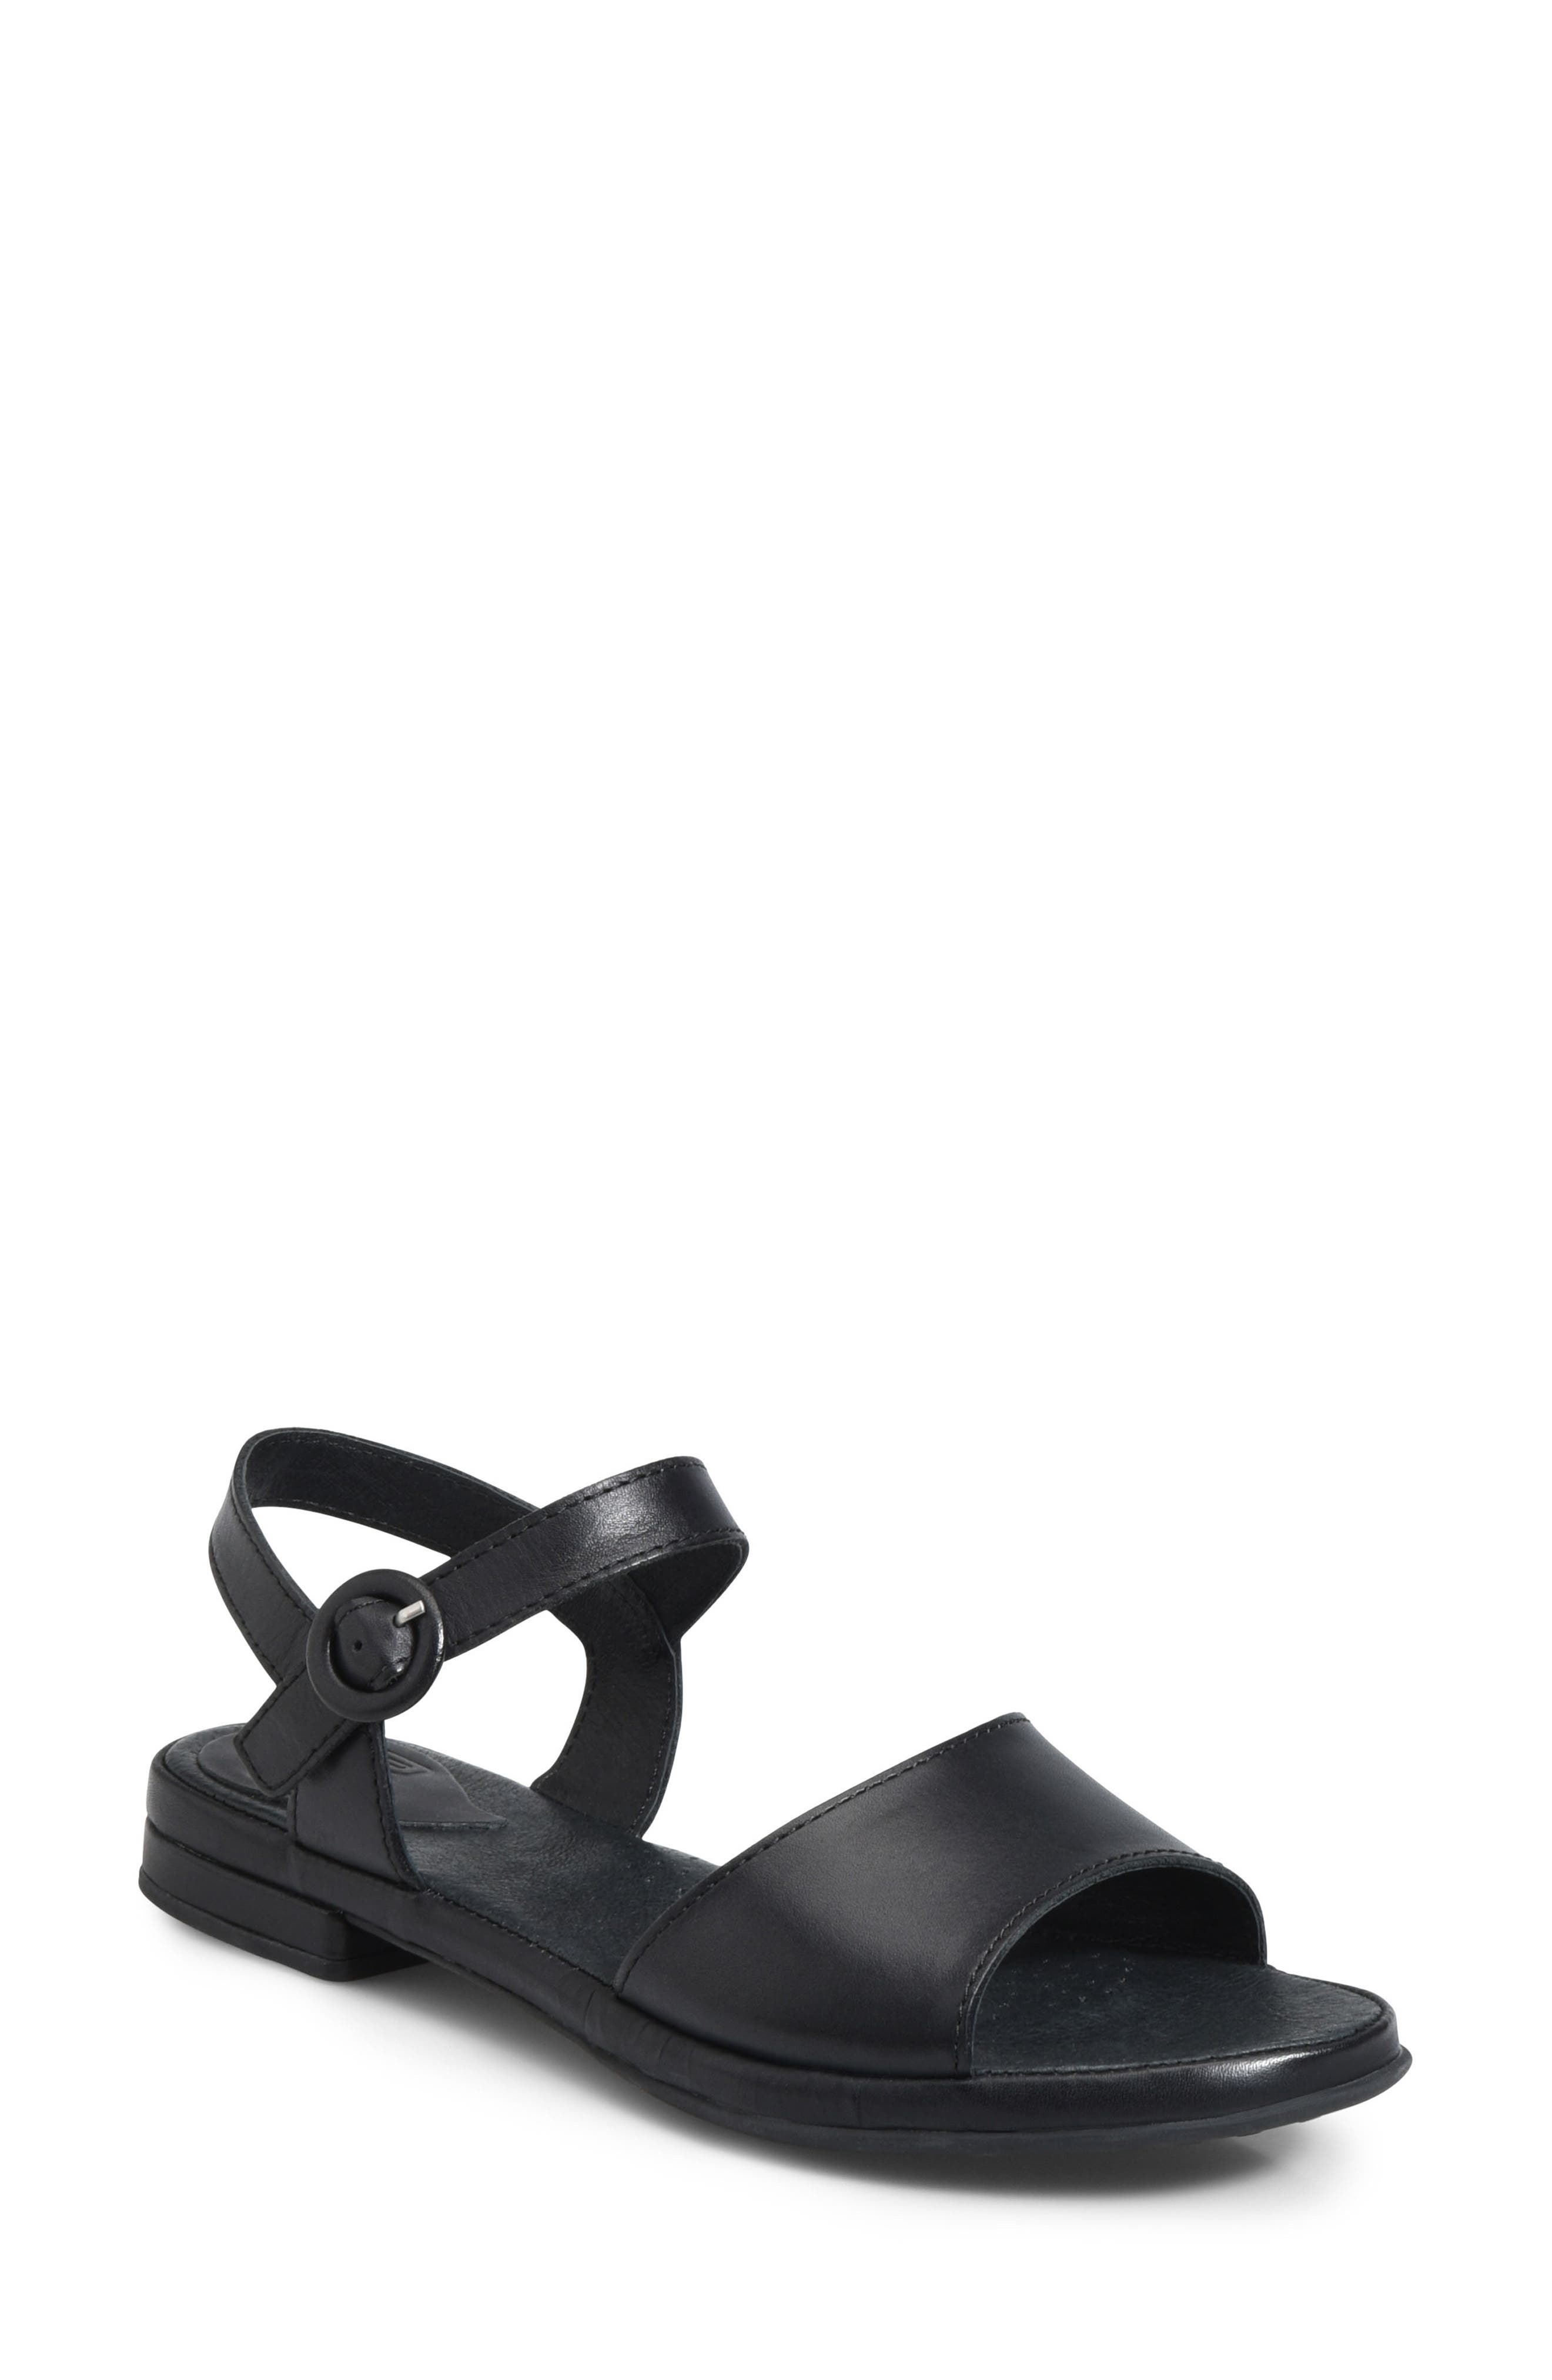 Berry Sandal,                         Main,                         color, BLACK LEATHER